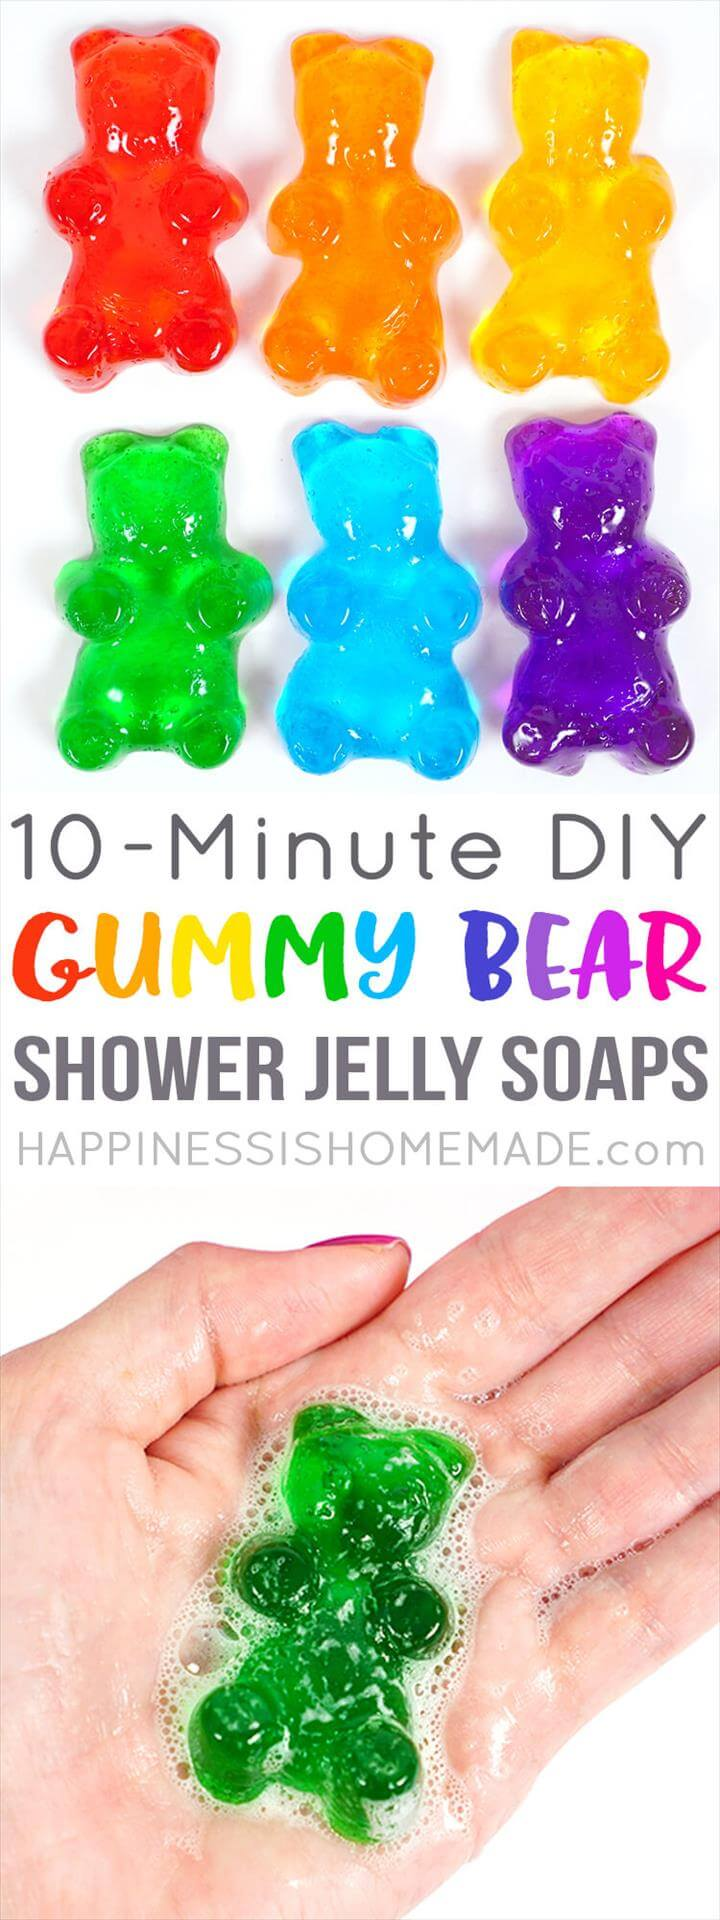 Bath Jellies, Shower Jellies Diy, Jelly Soap, Soap Tutorial, Easter Gift, Easter Crafts, Kids Crafts, Soap Recipes, Home Made Soap,